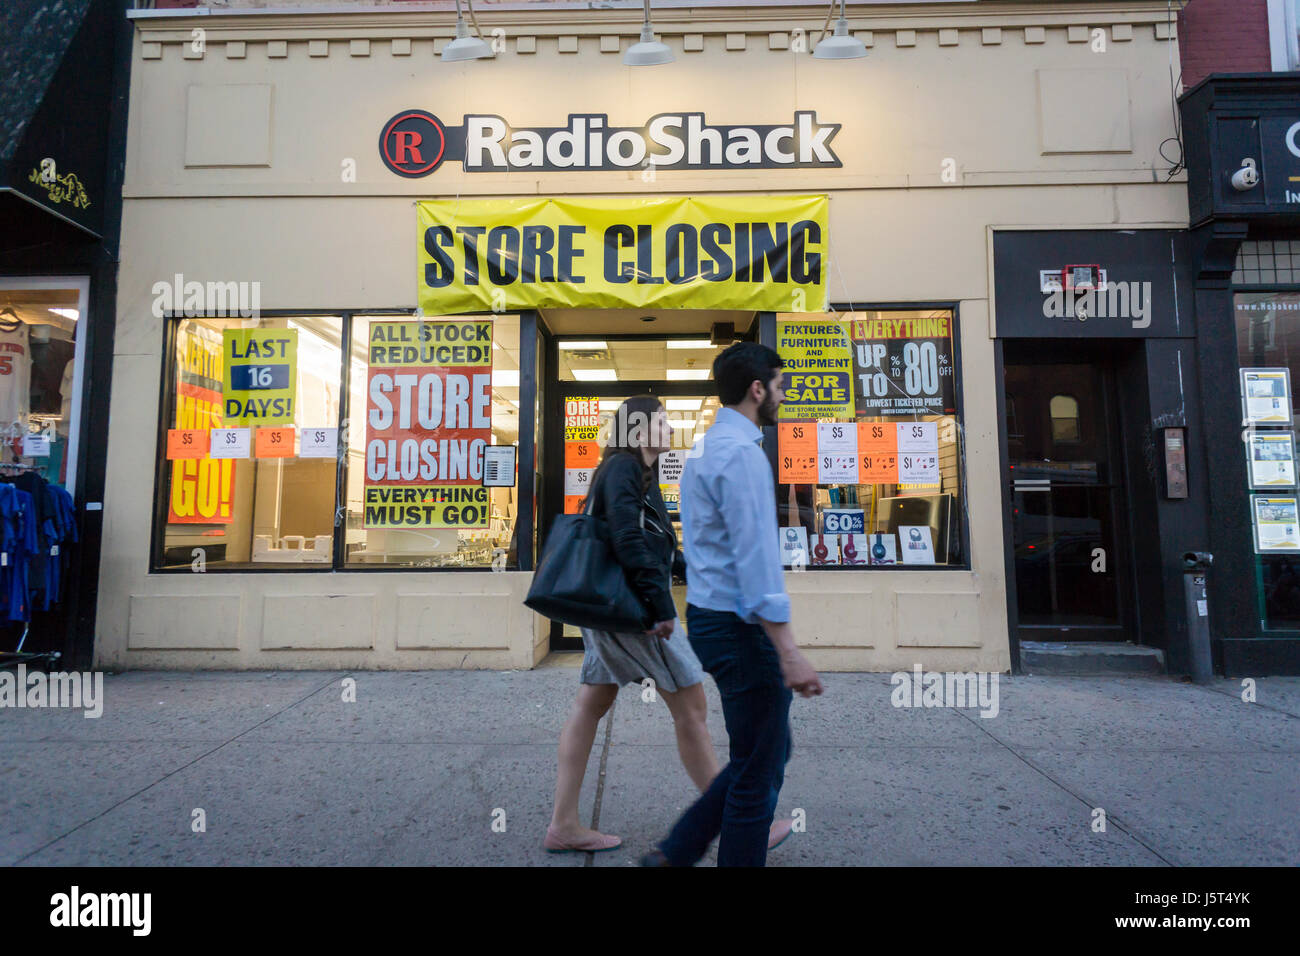 A RadioShack store in Hoboken in New Jersey on Tuesday, May